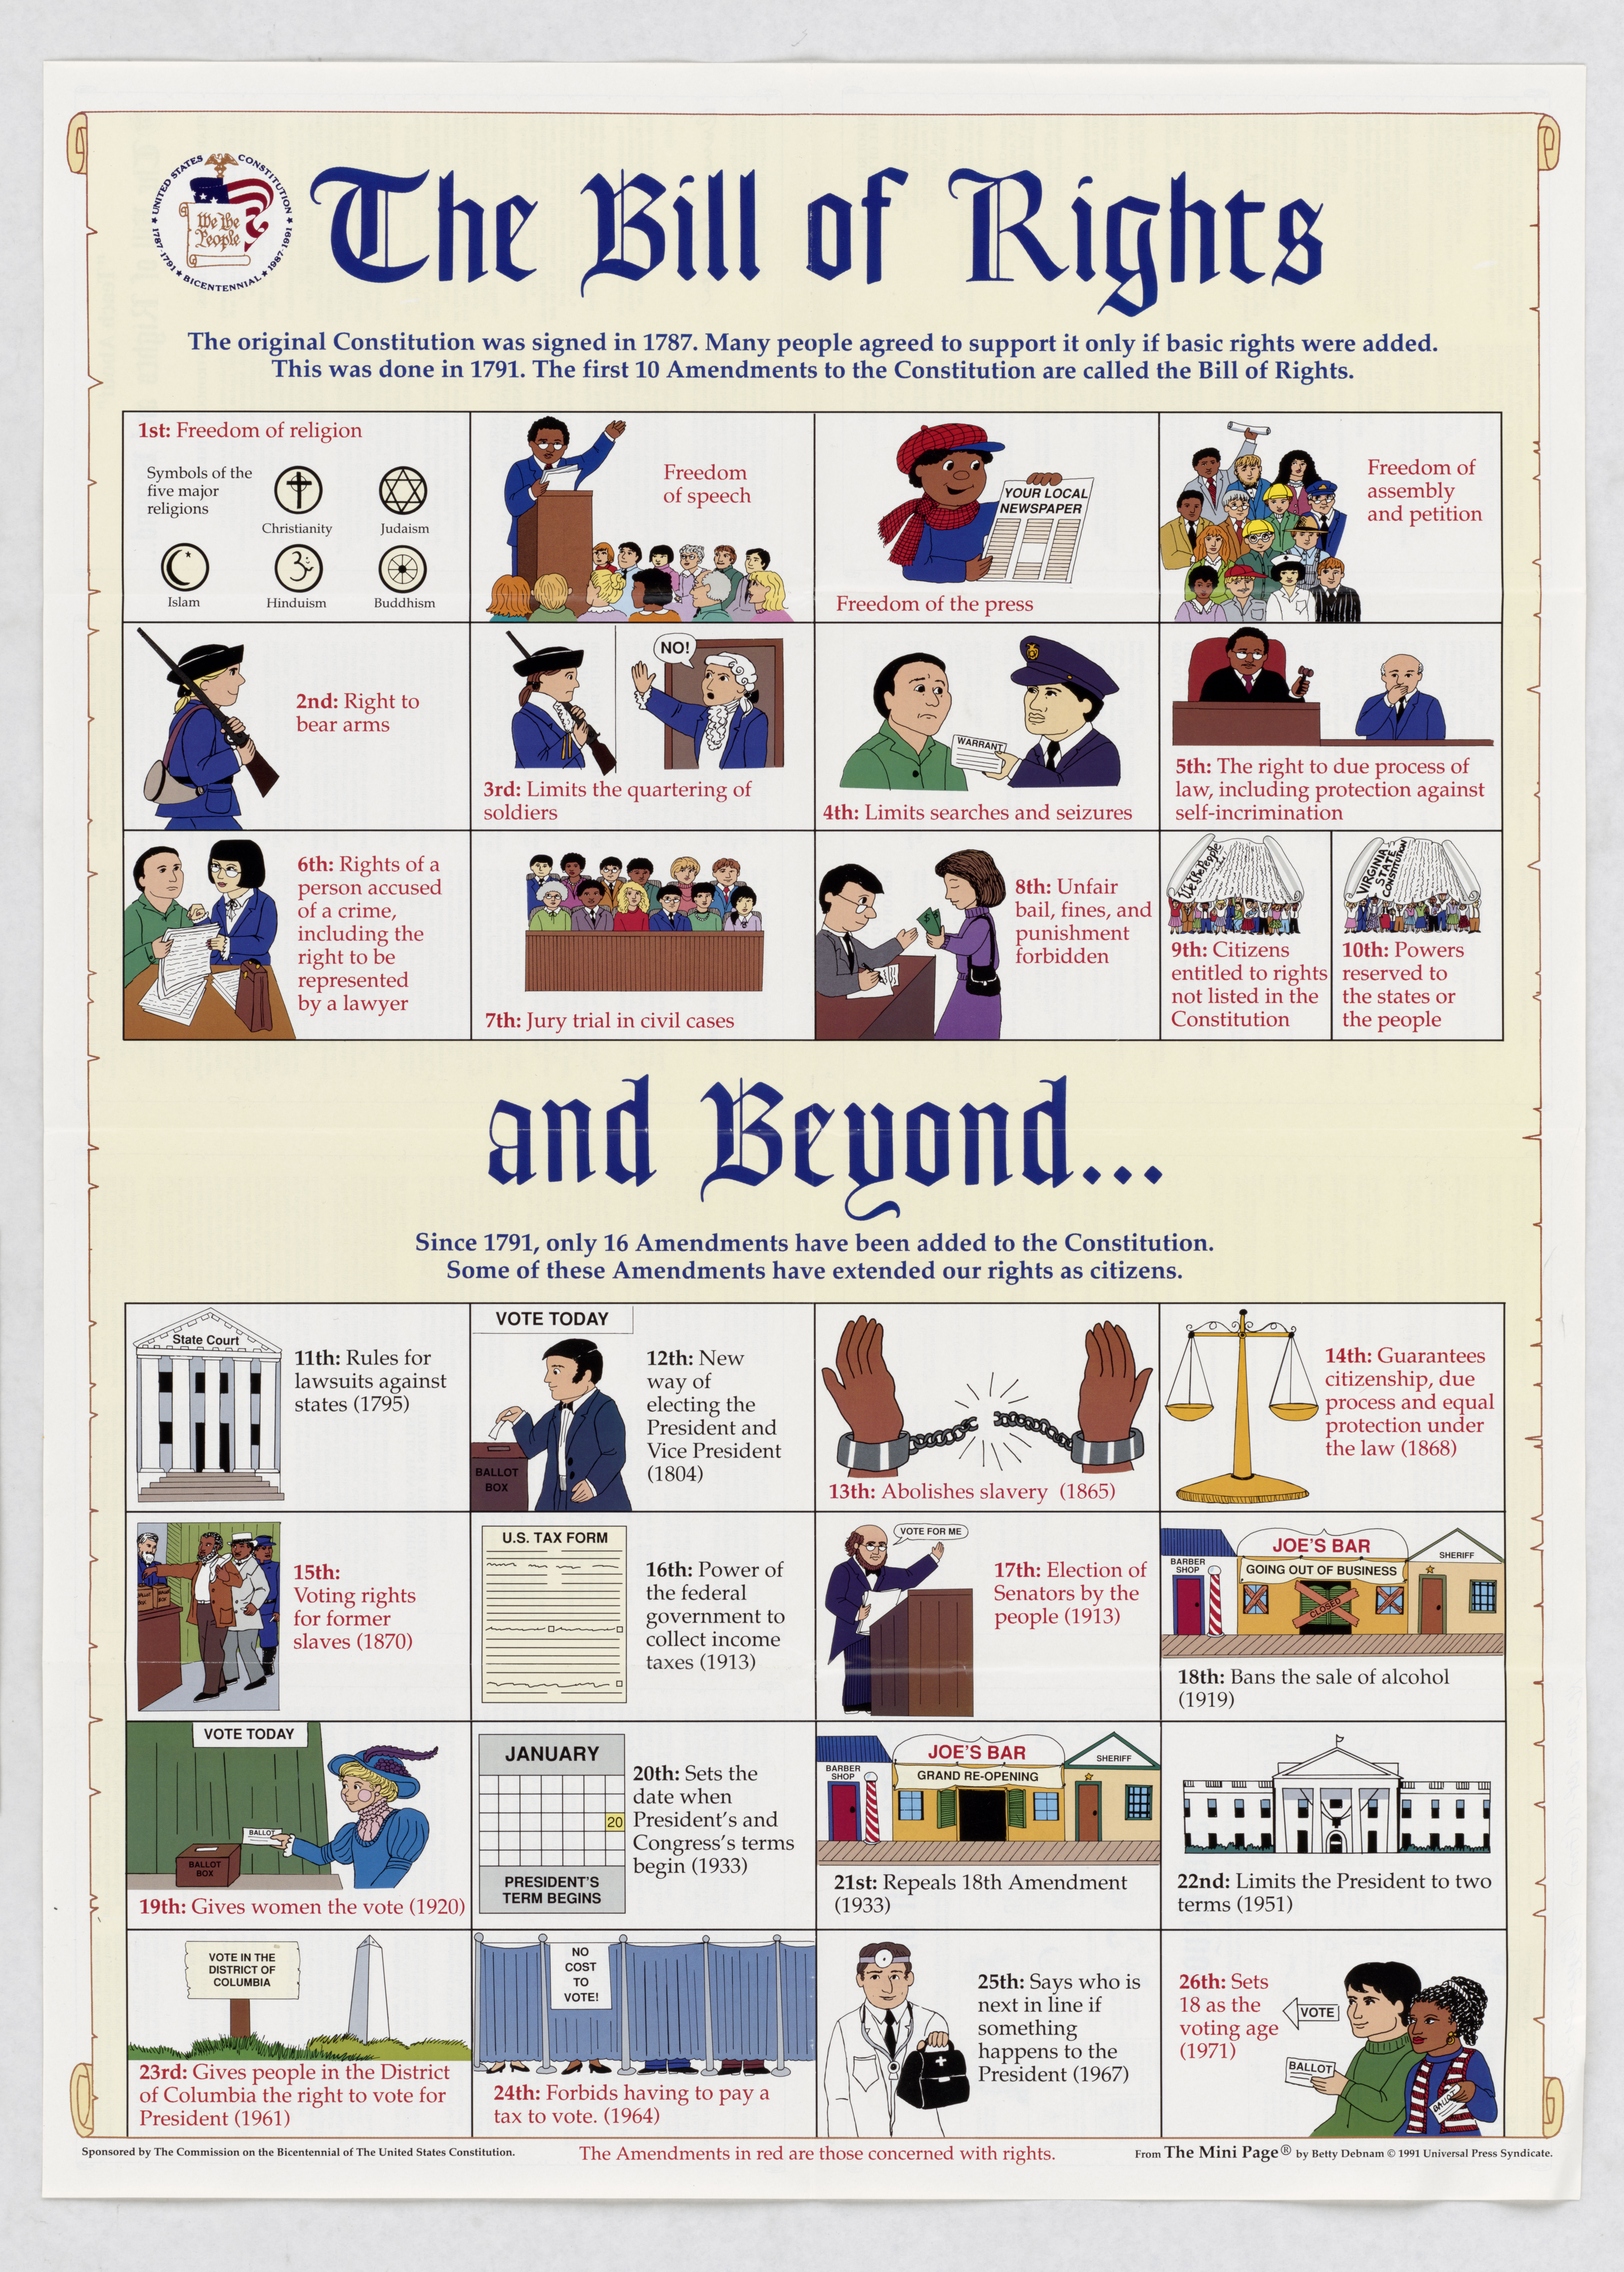 bill-of-rights-and-beyond-28069-2015-001-ac-jpg